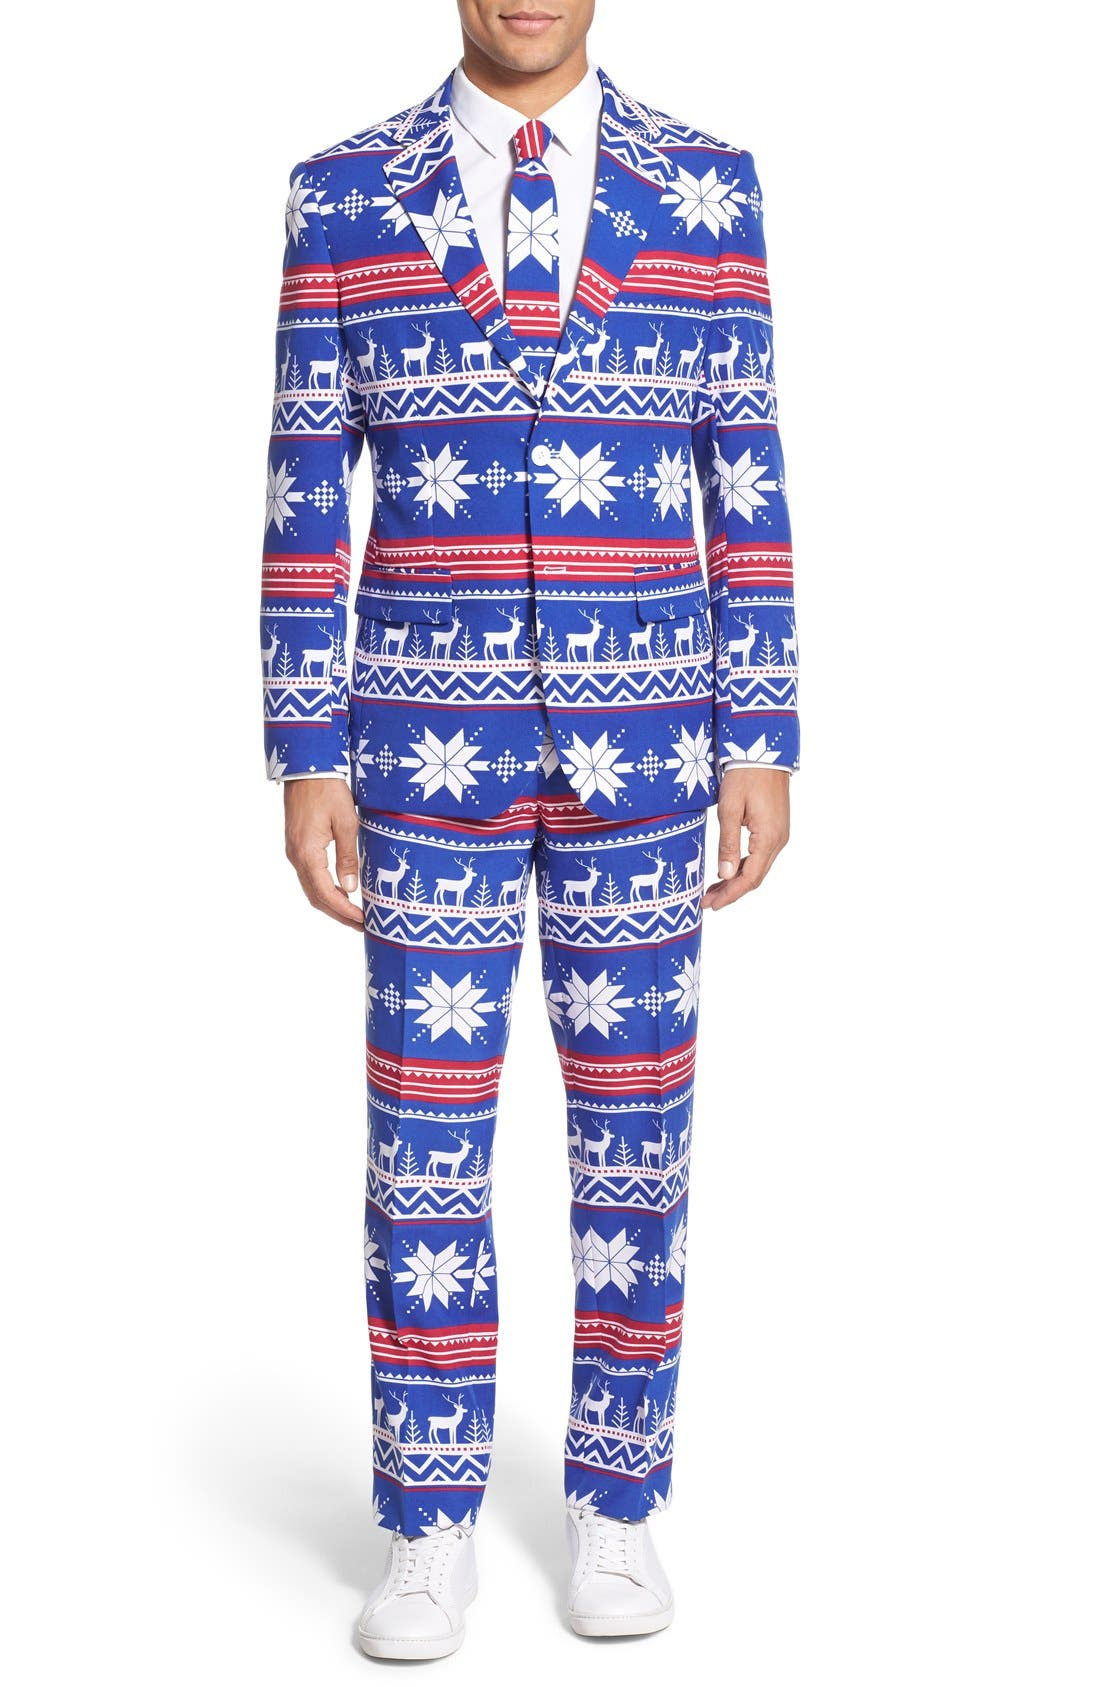 OppoSuits 'Rudolph' Holiday Suit & Tie